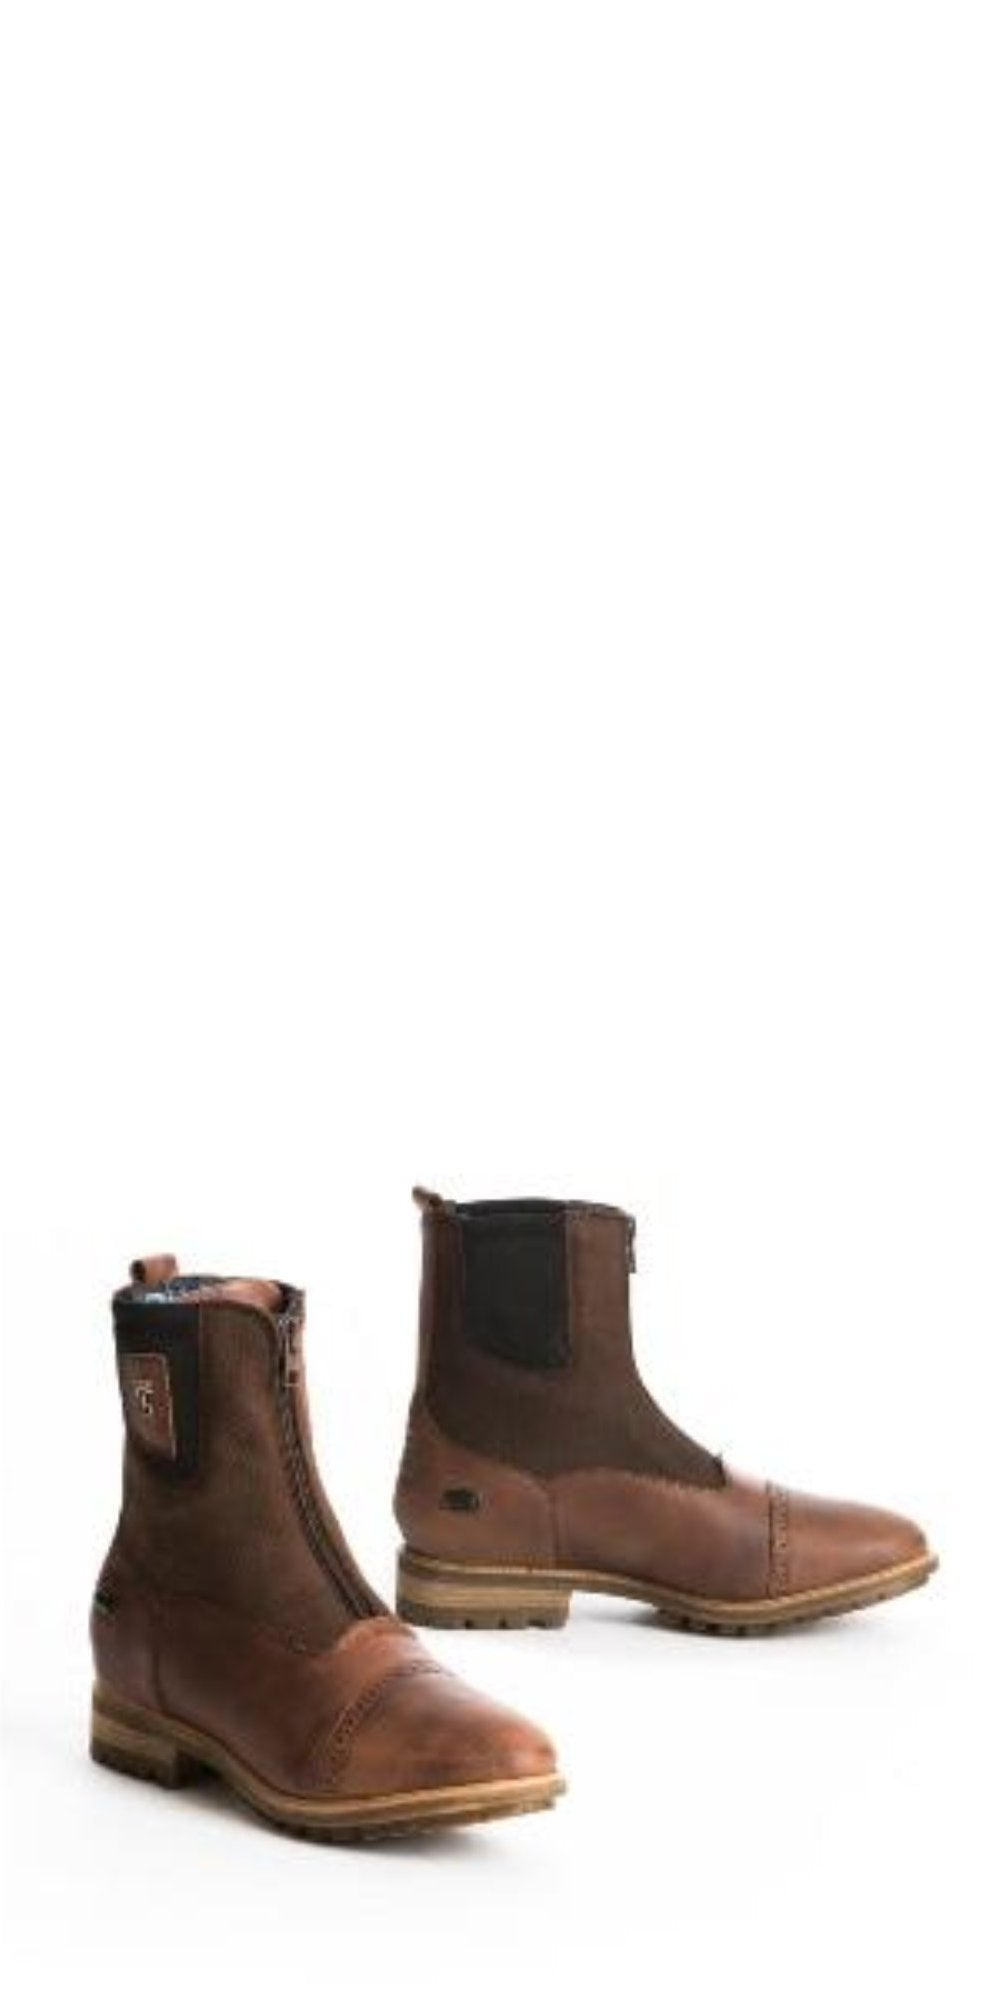 Tredstep Spirit Country Paddock Boot